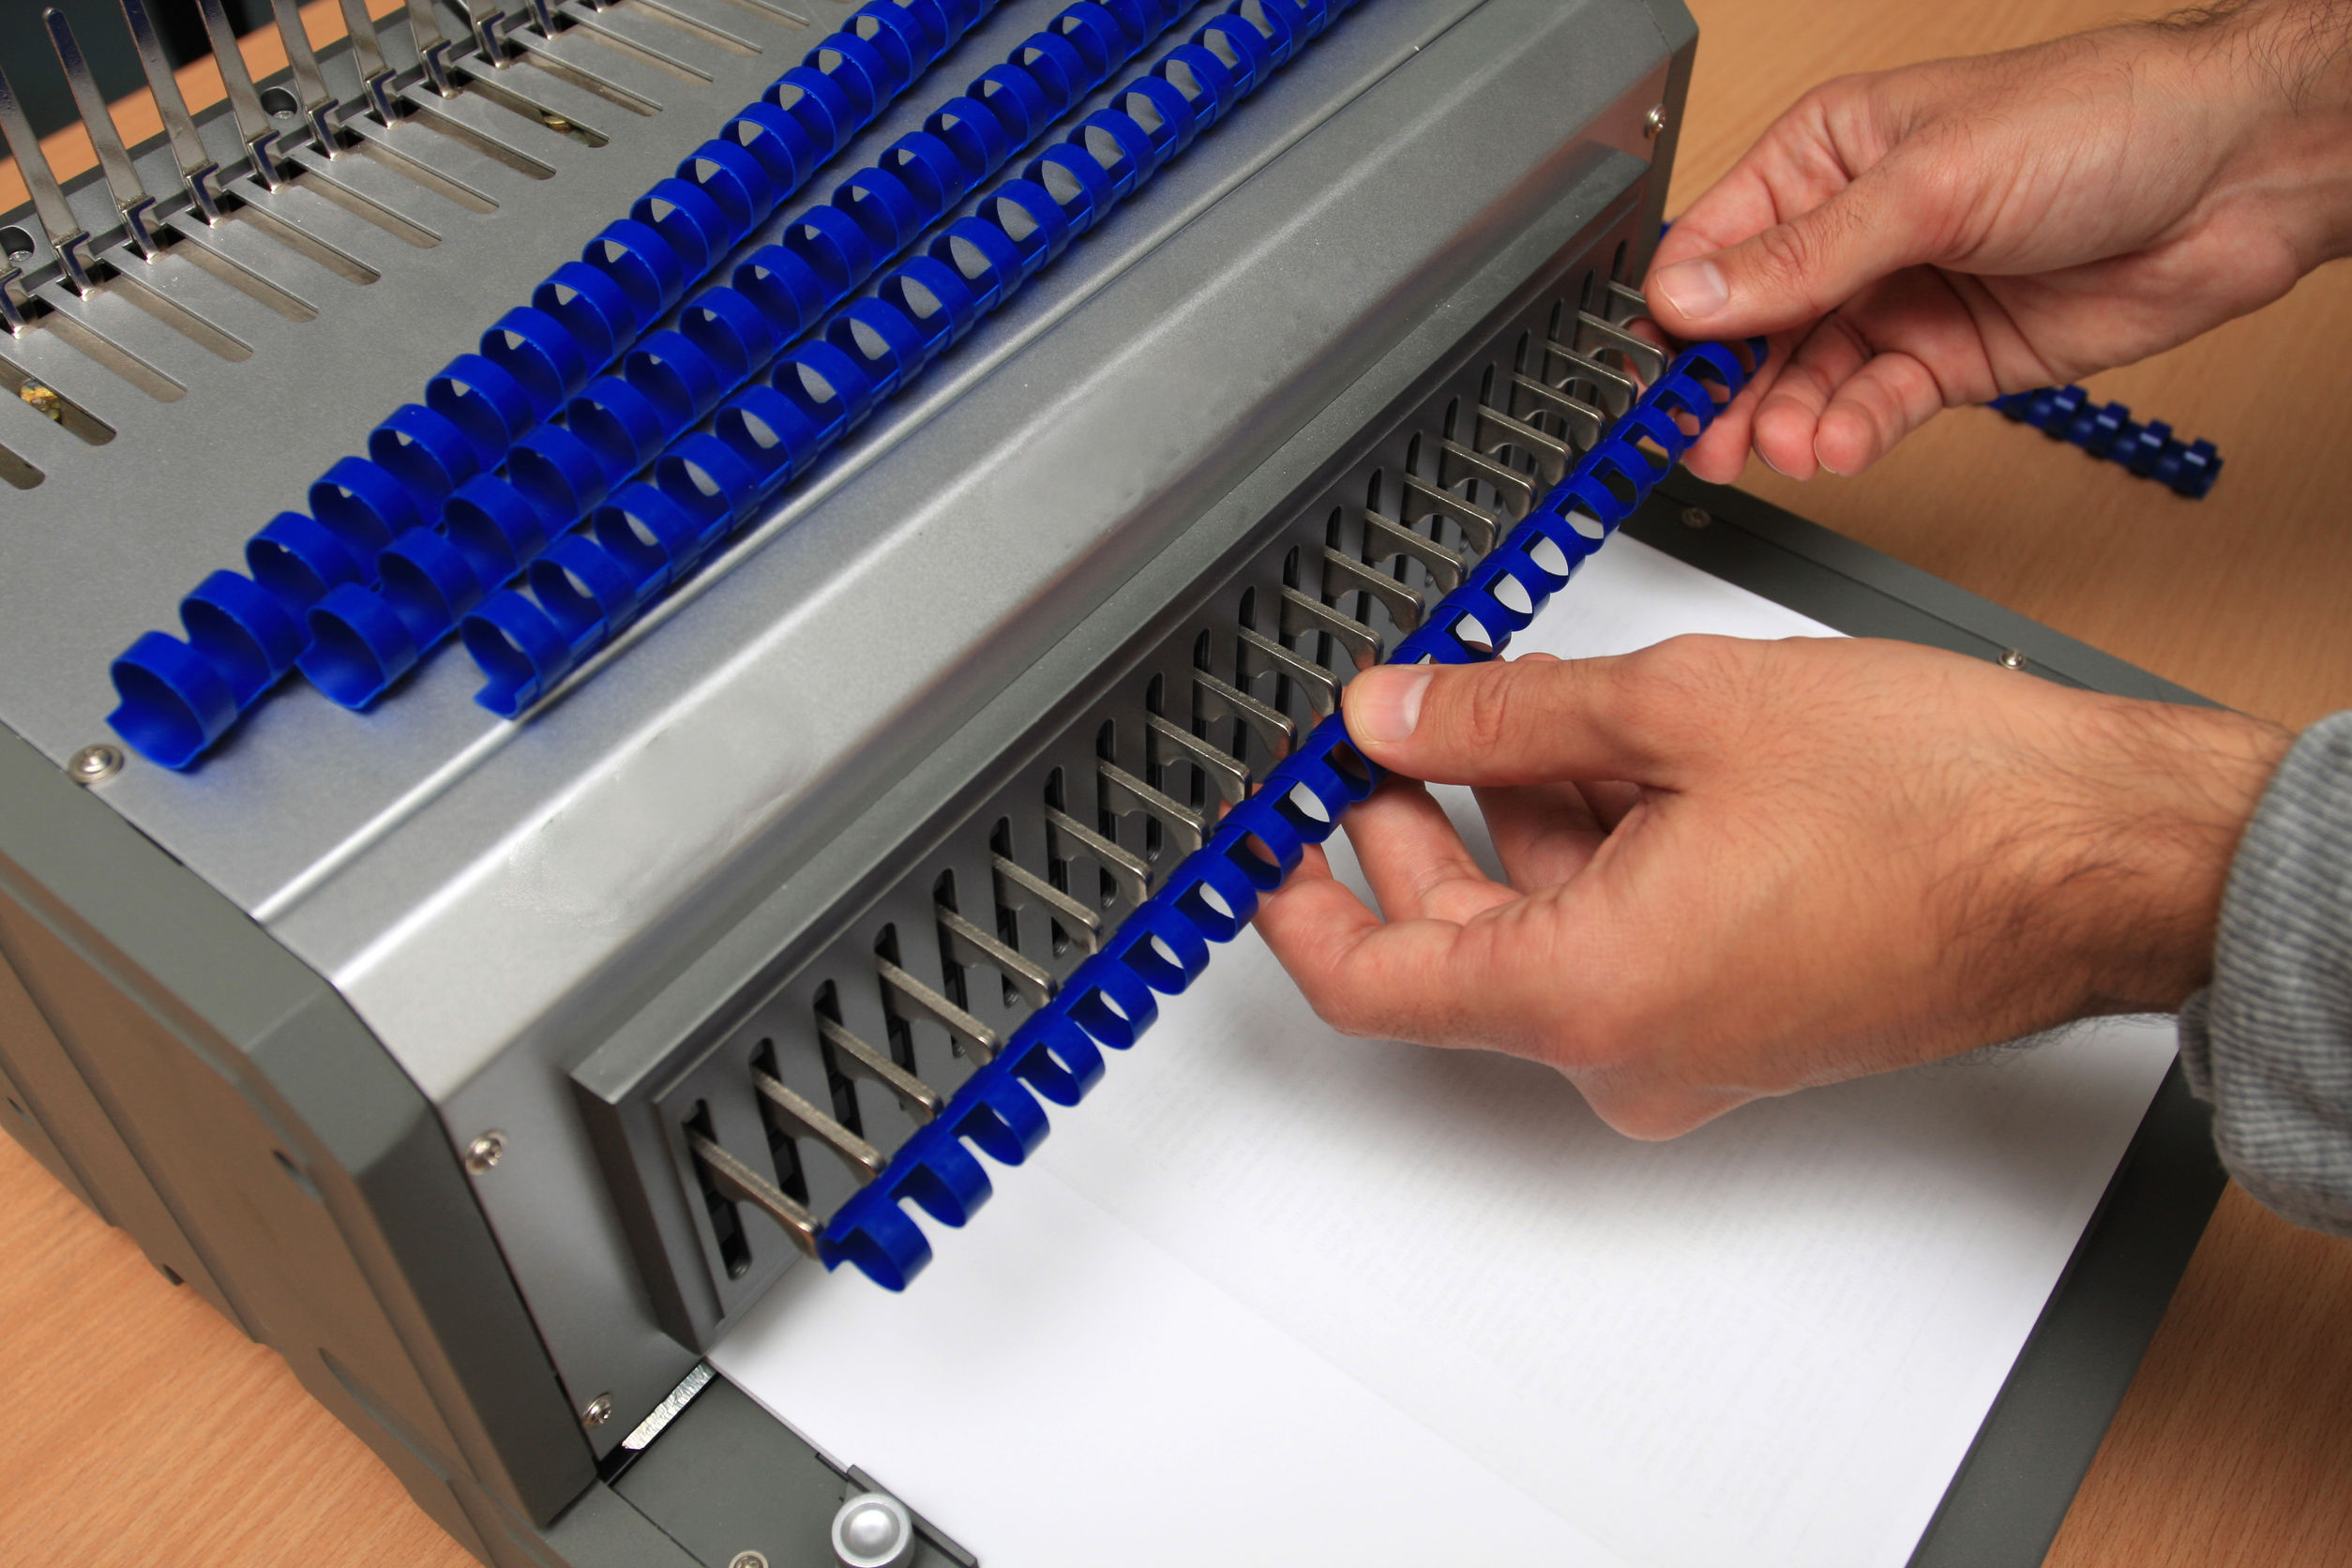 47902966 - comb binder machine with clipping path